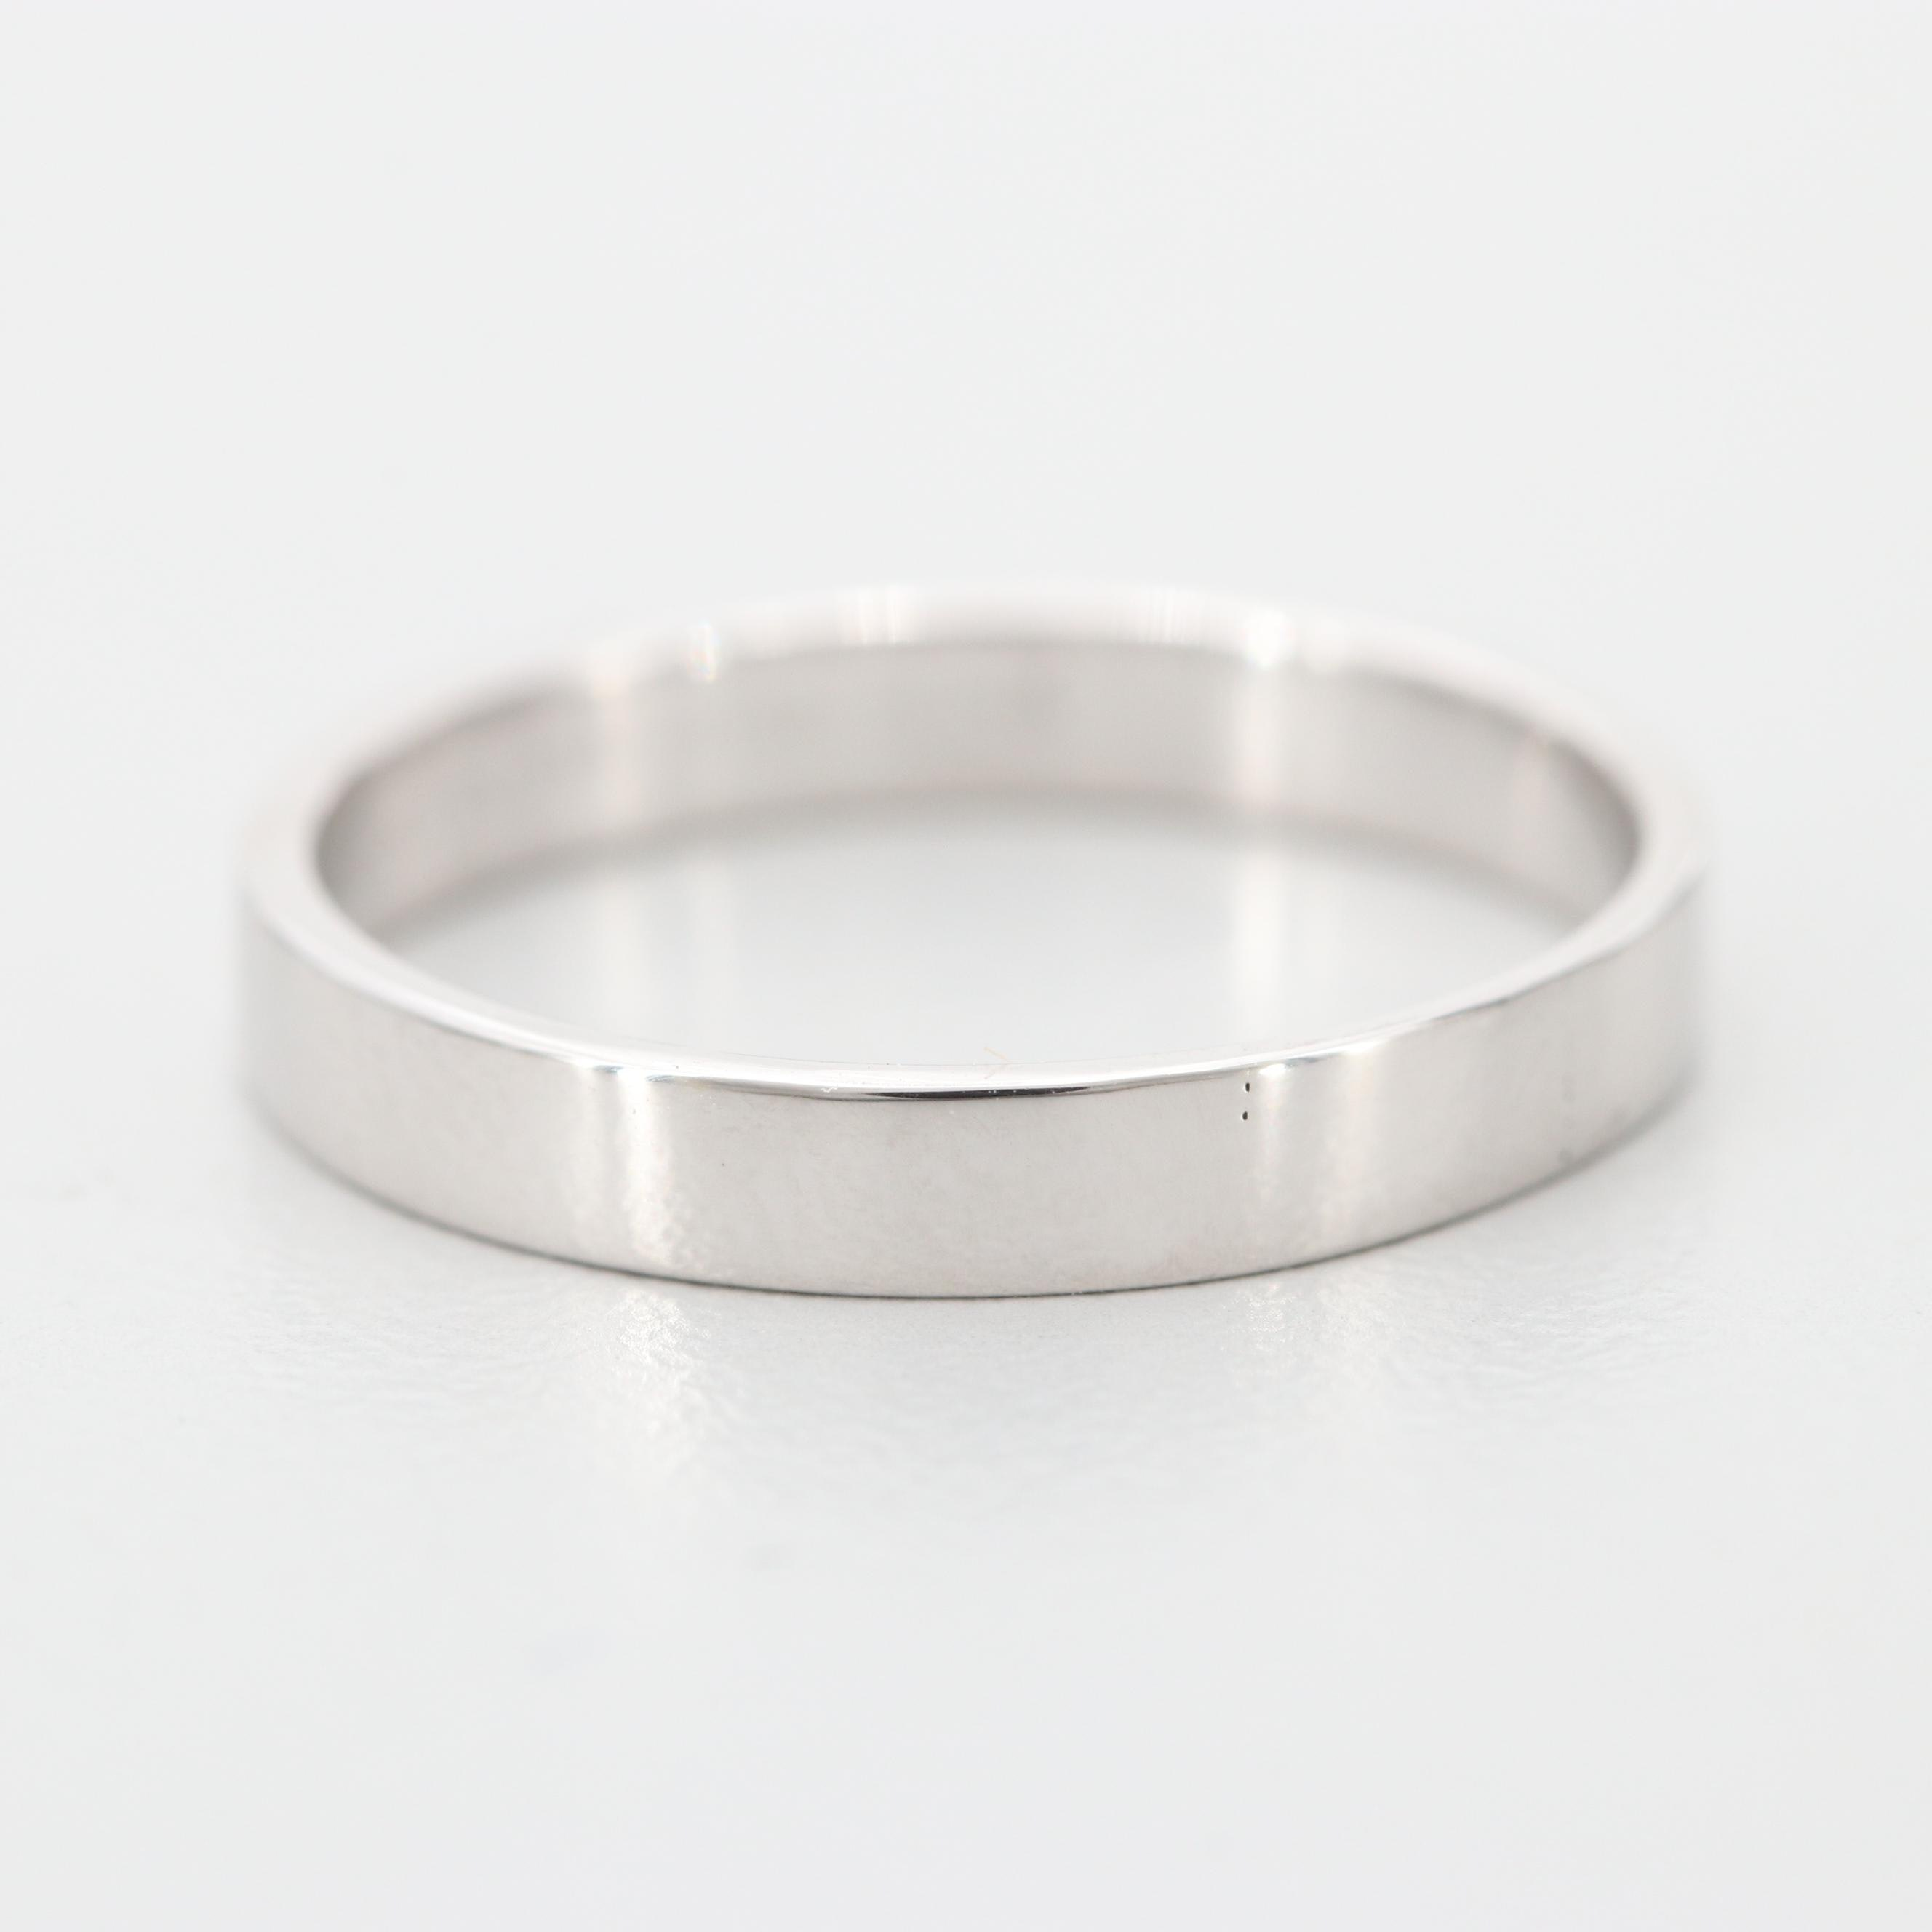 Benchmark 14K White Gold Band Ring